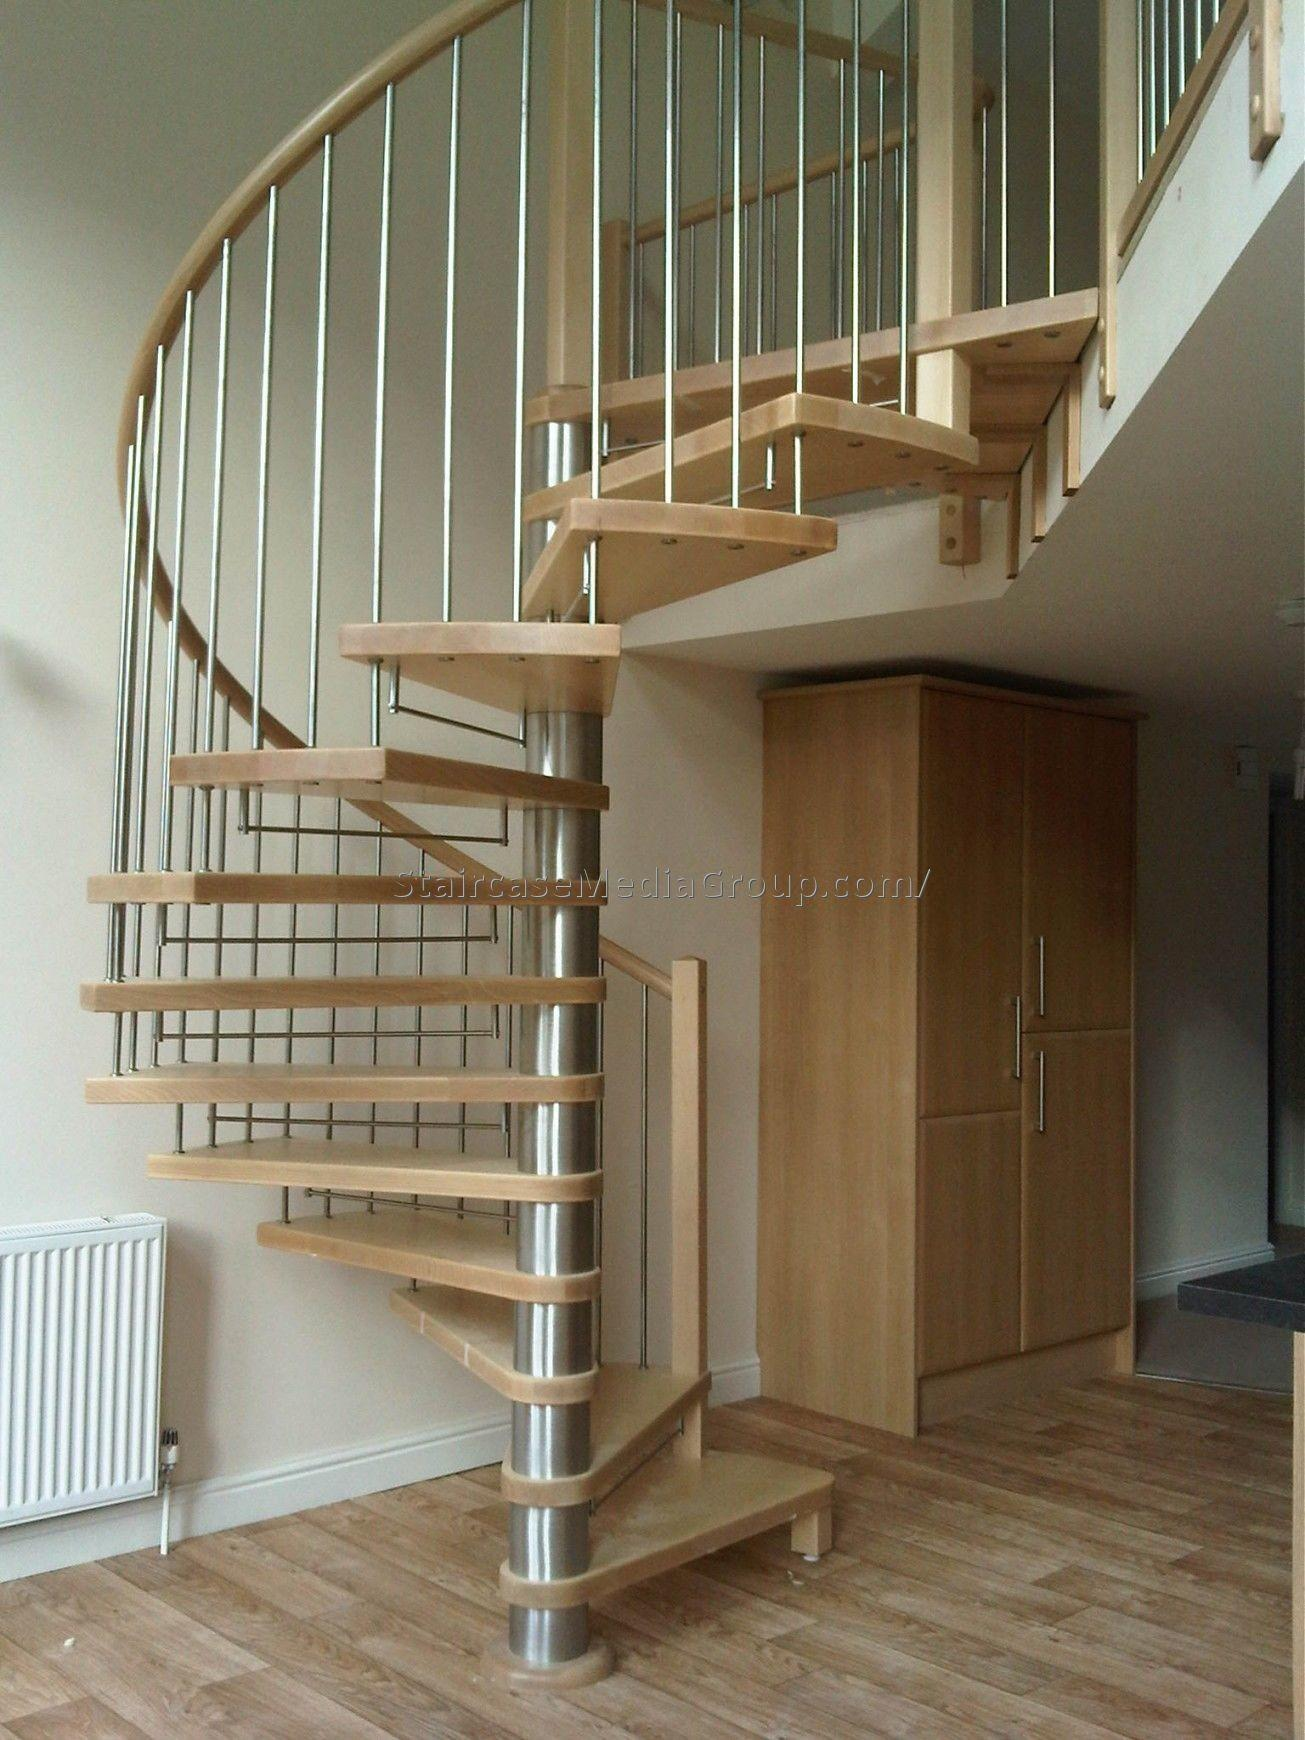 Spiral Staircase Construction Best Ideas